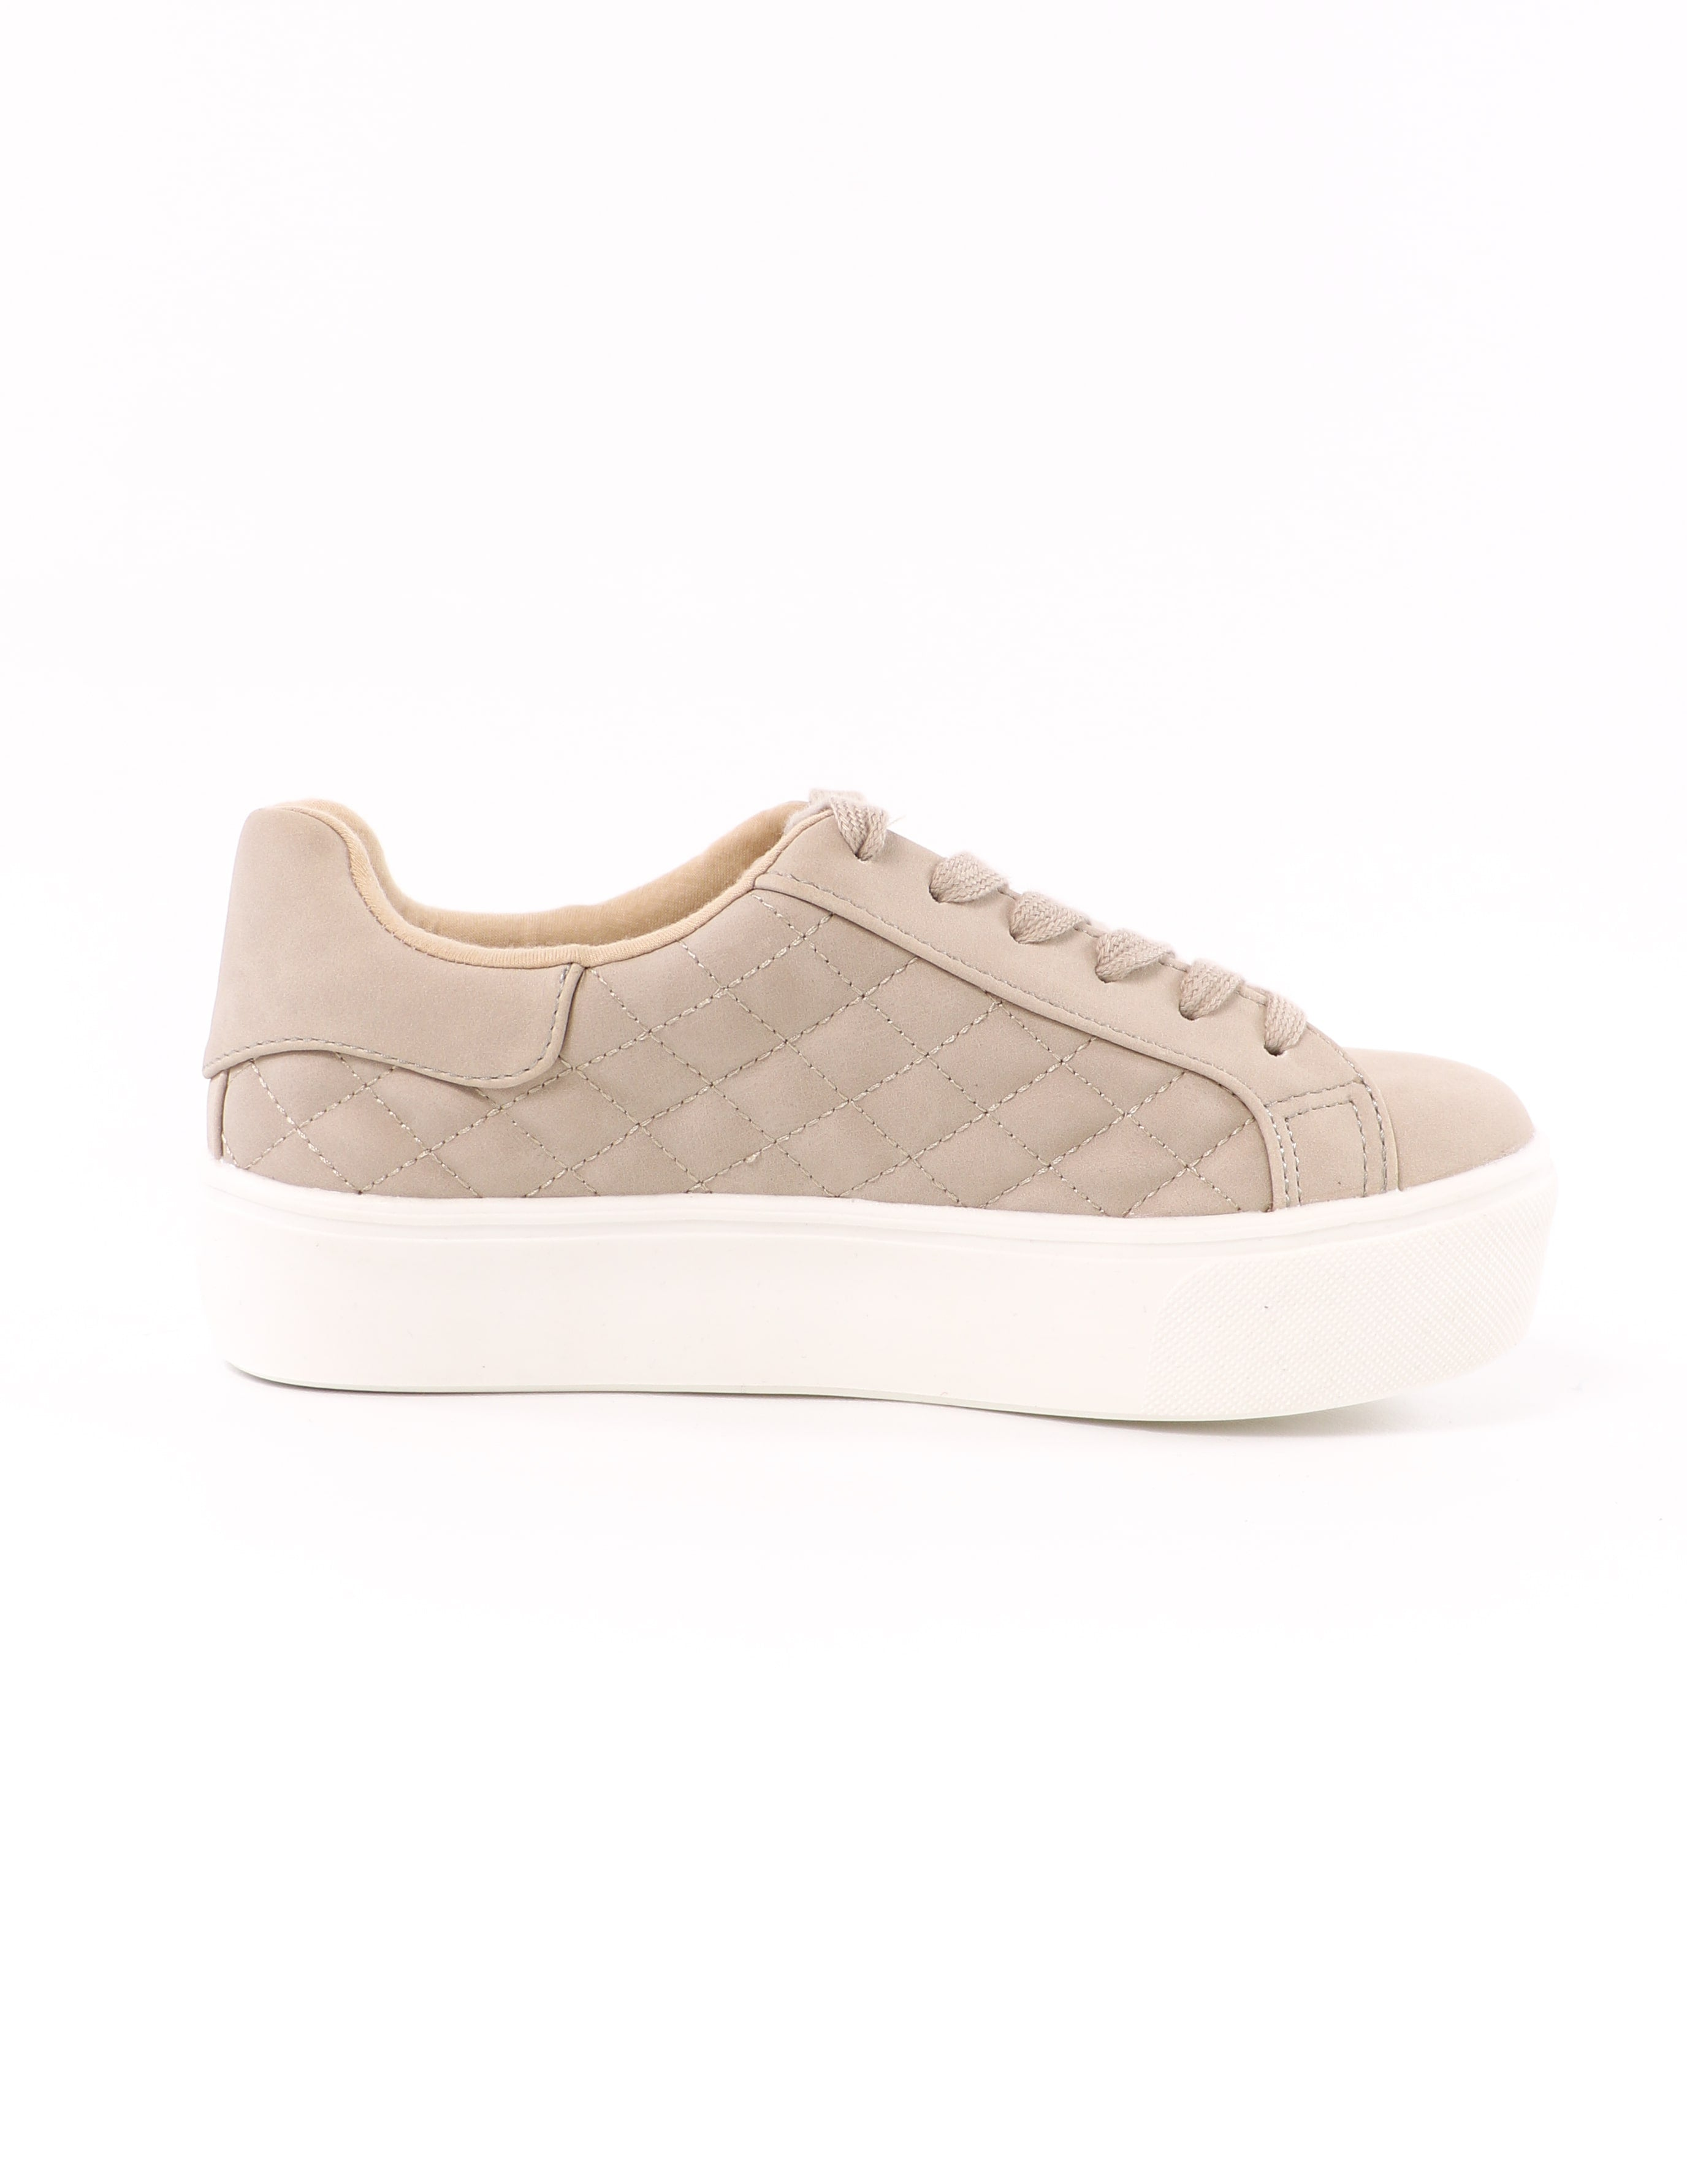 side of the quilted quilt messin' around platform sneaker with white sole - elle bleu shoes